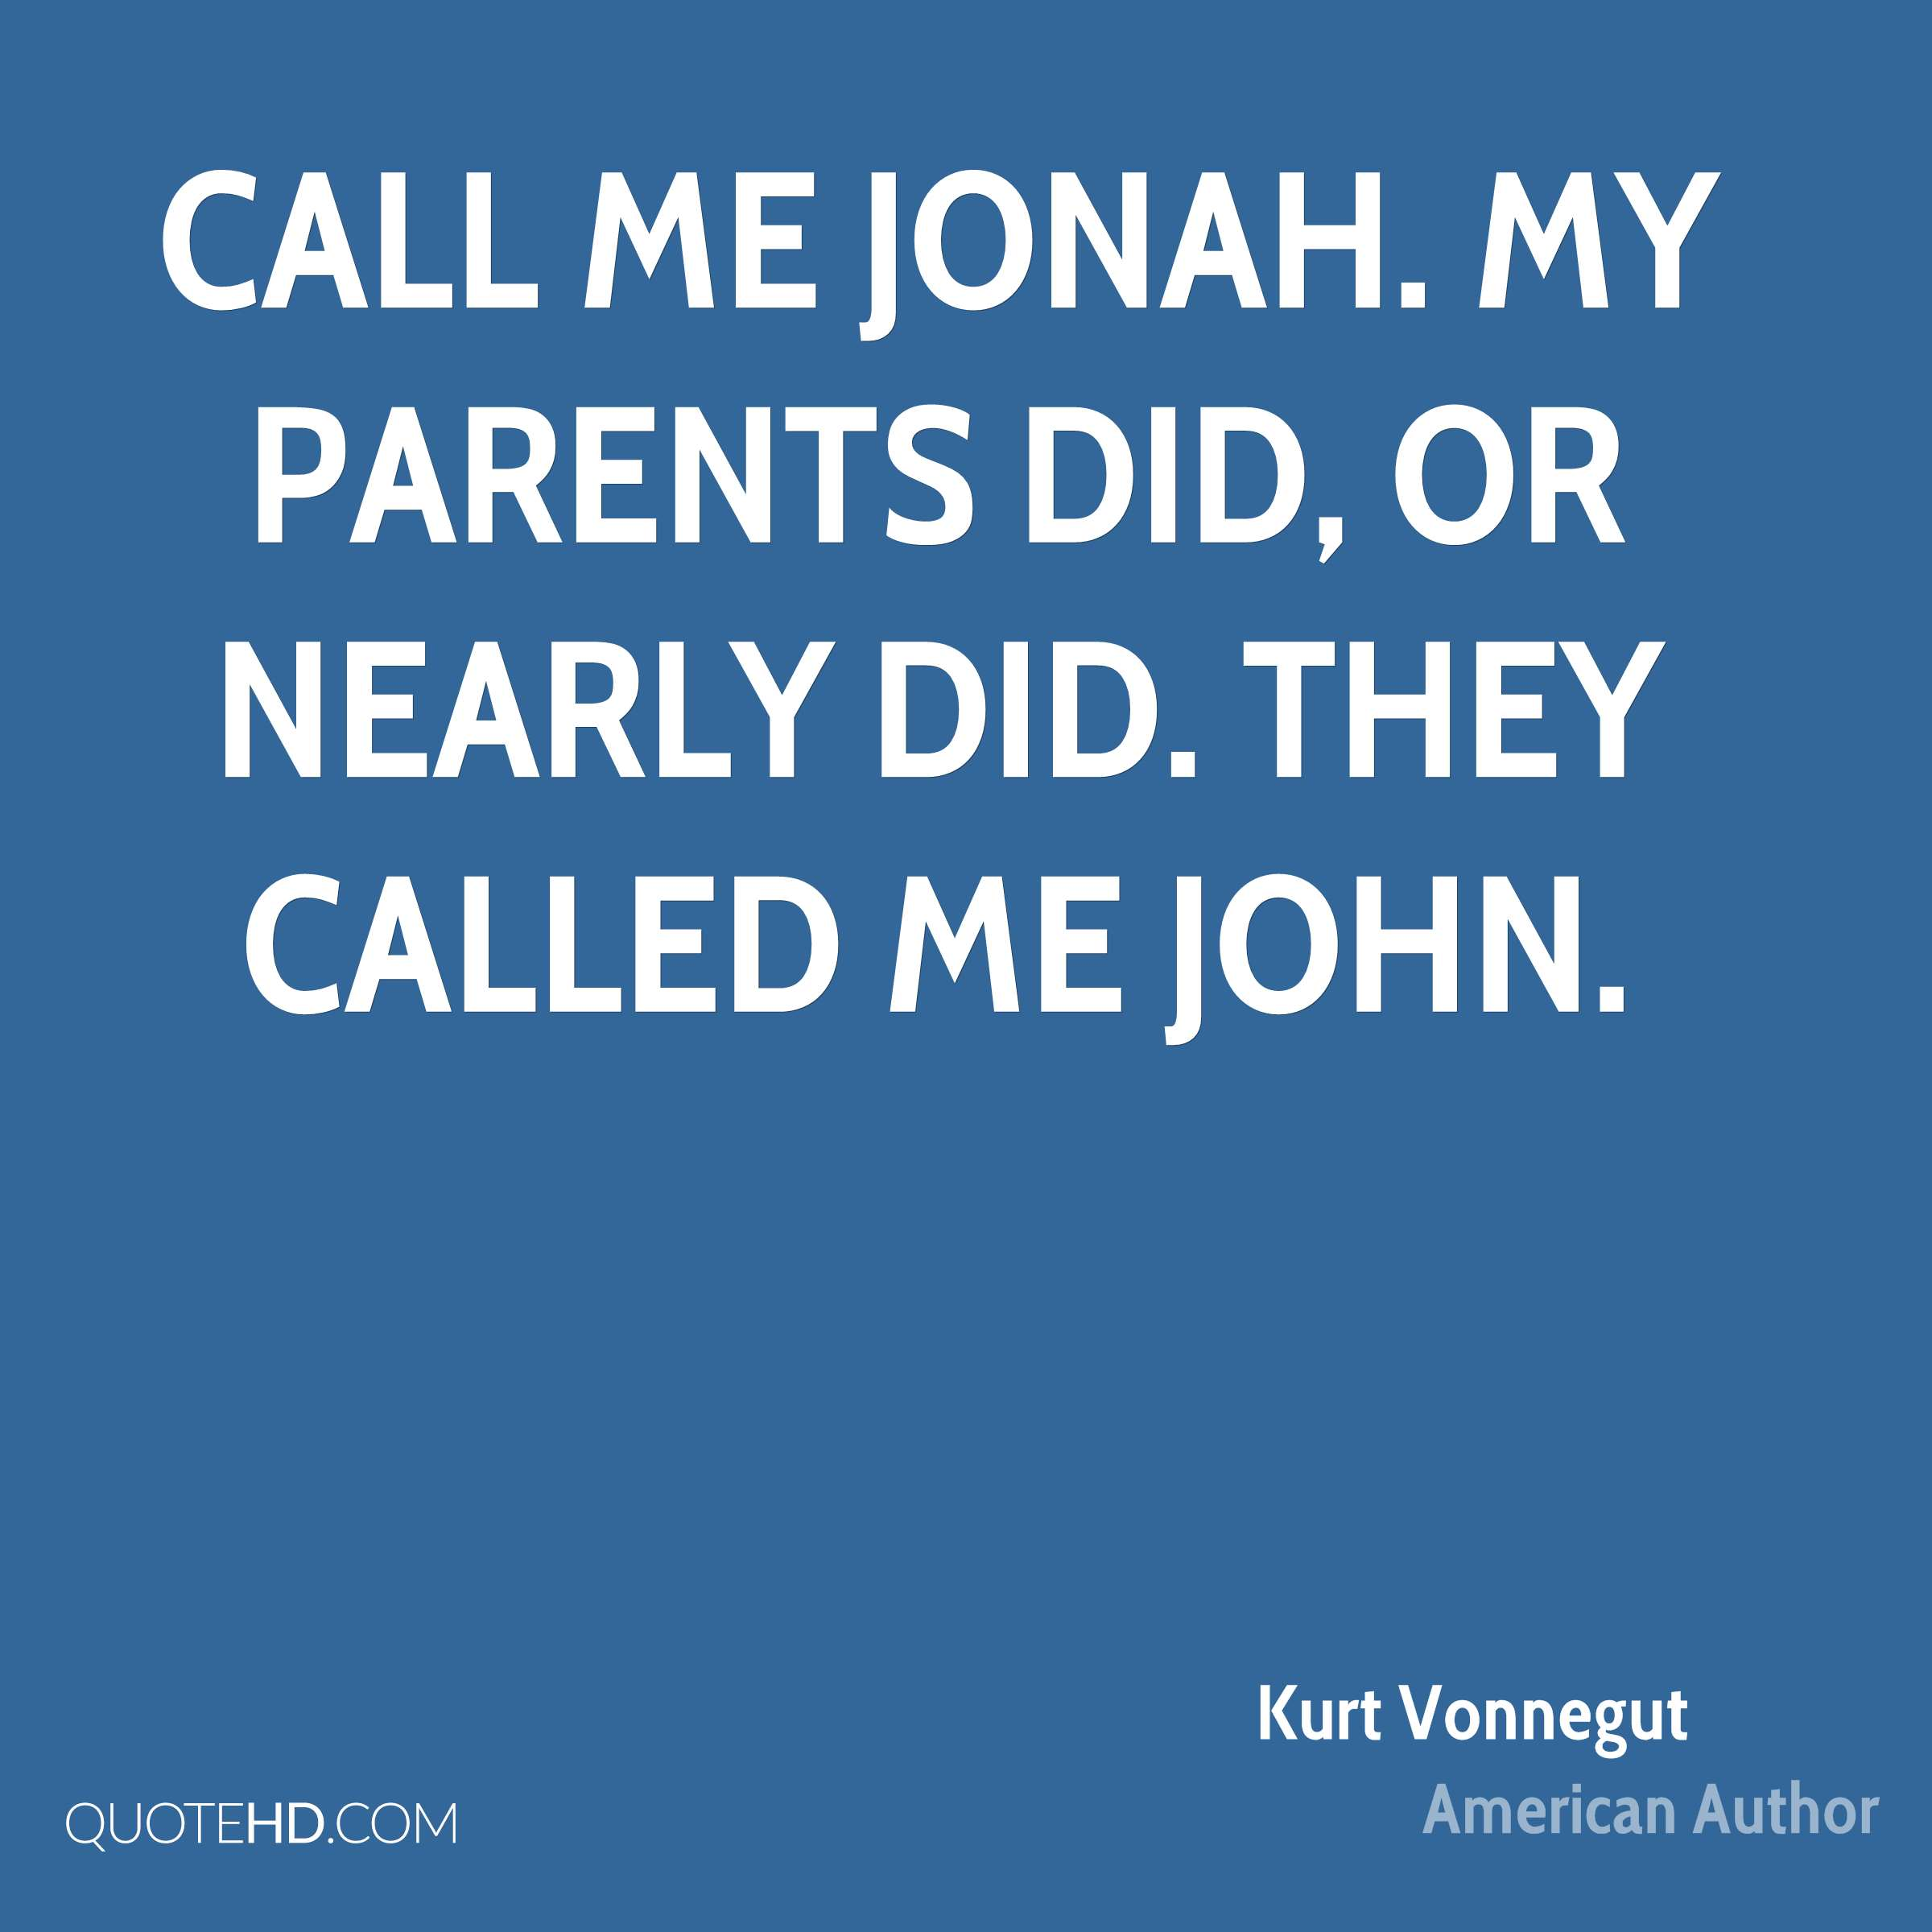 Call me Jonah. My parents did, or nearly did. They called me John.